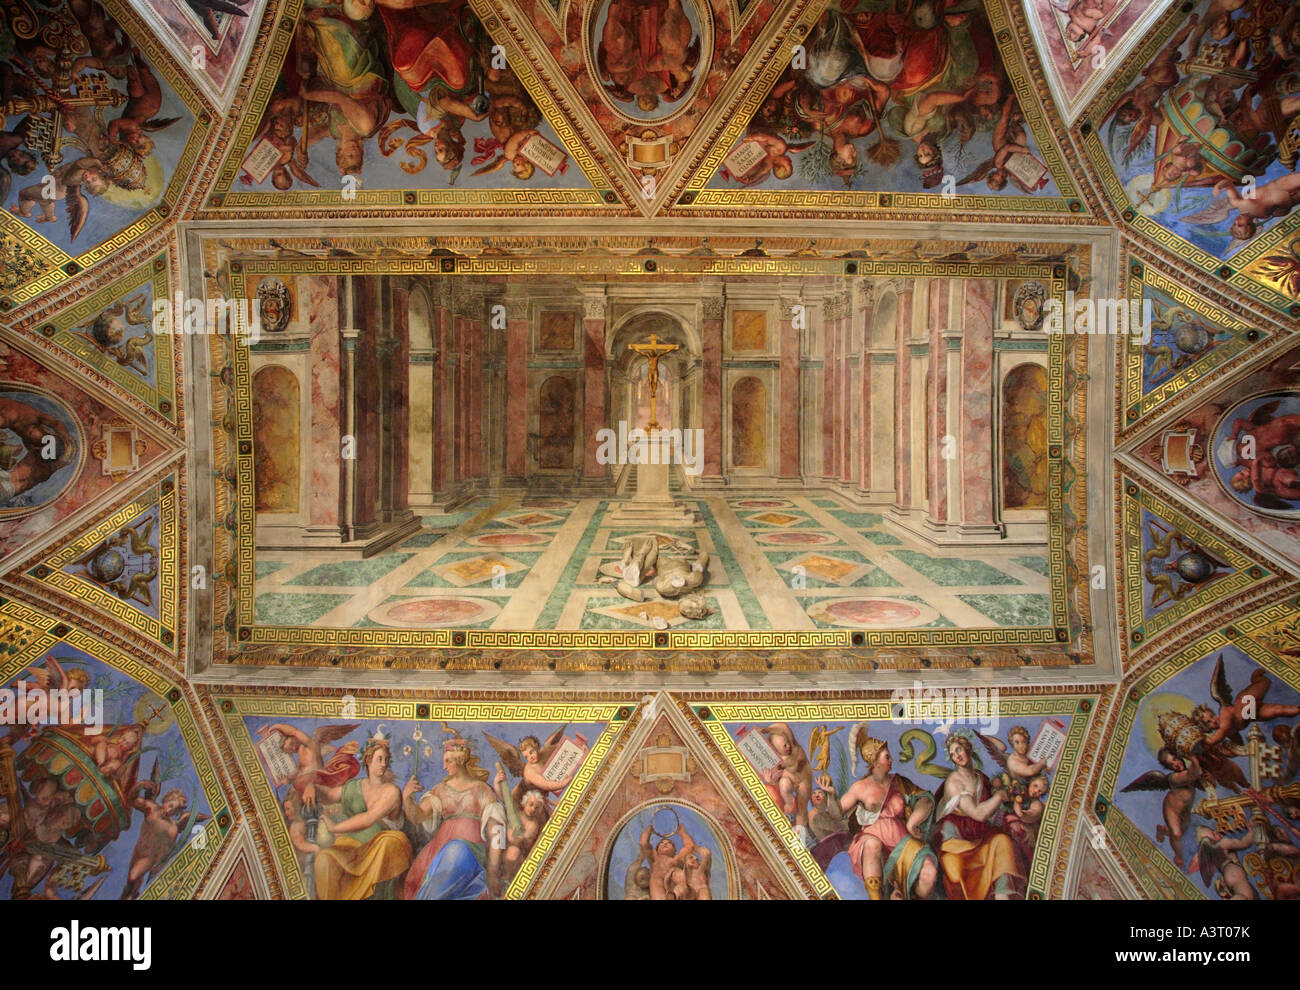 Ceiling of the Room of Constantine Vatican Museum Rome Italy - Stock Image